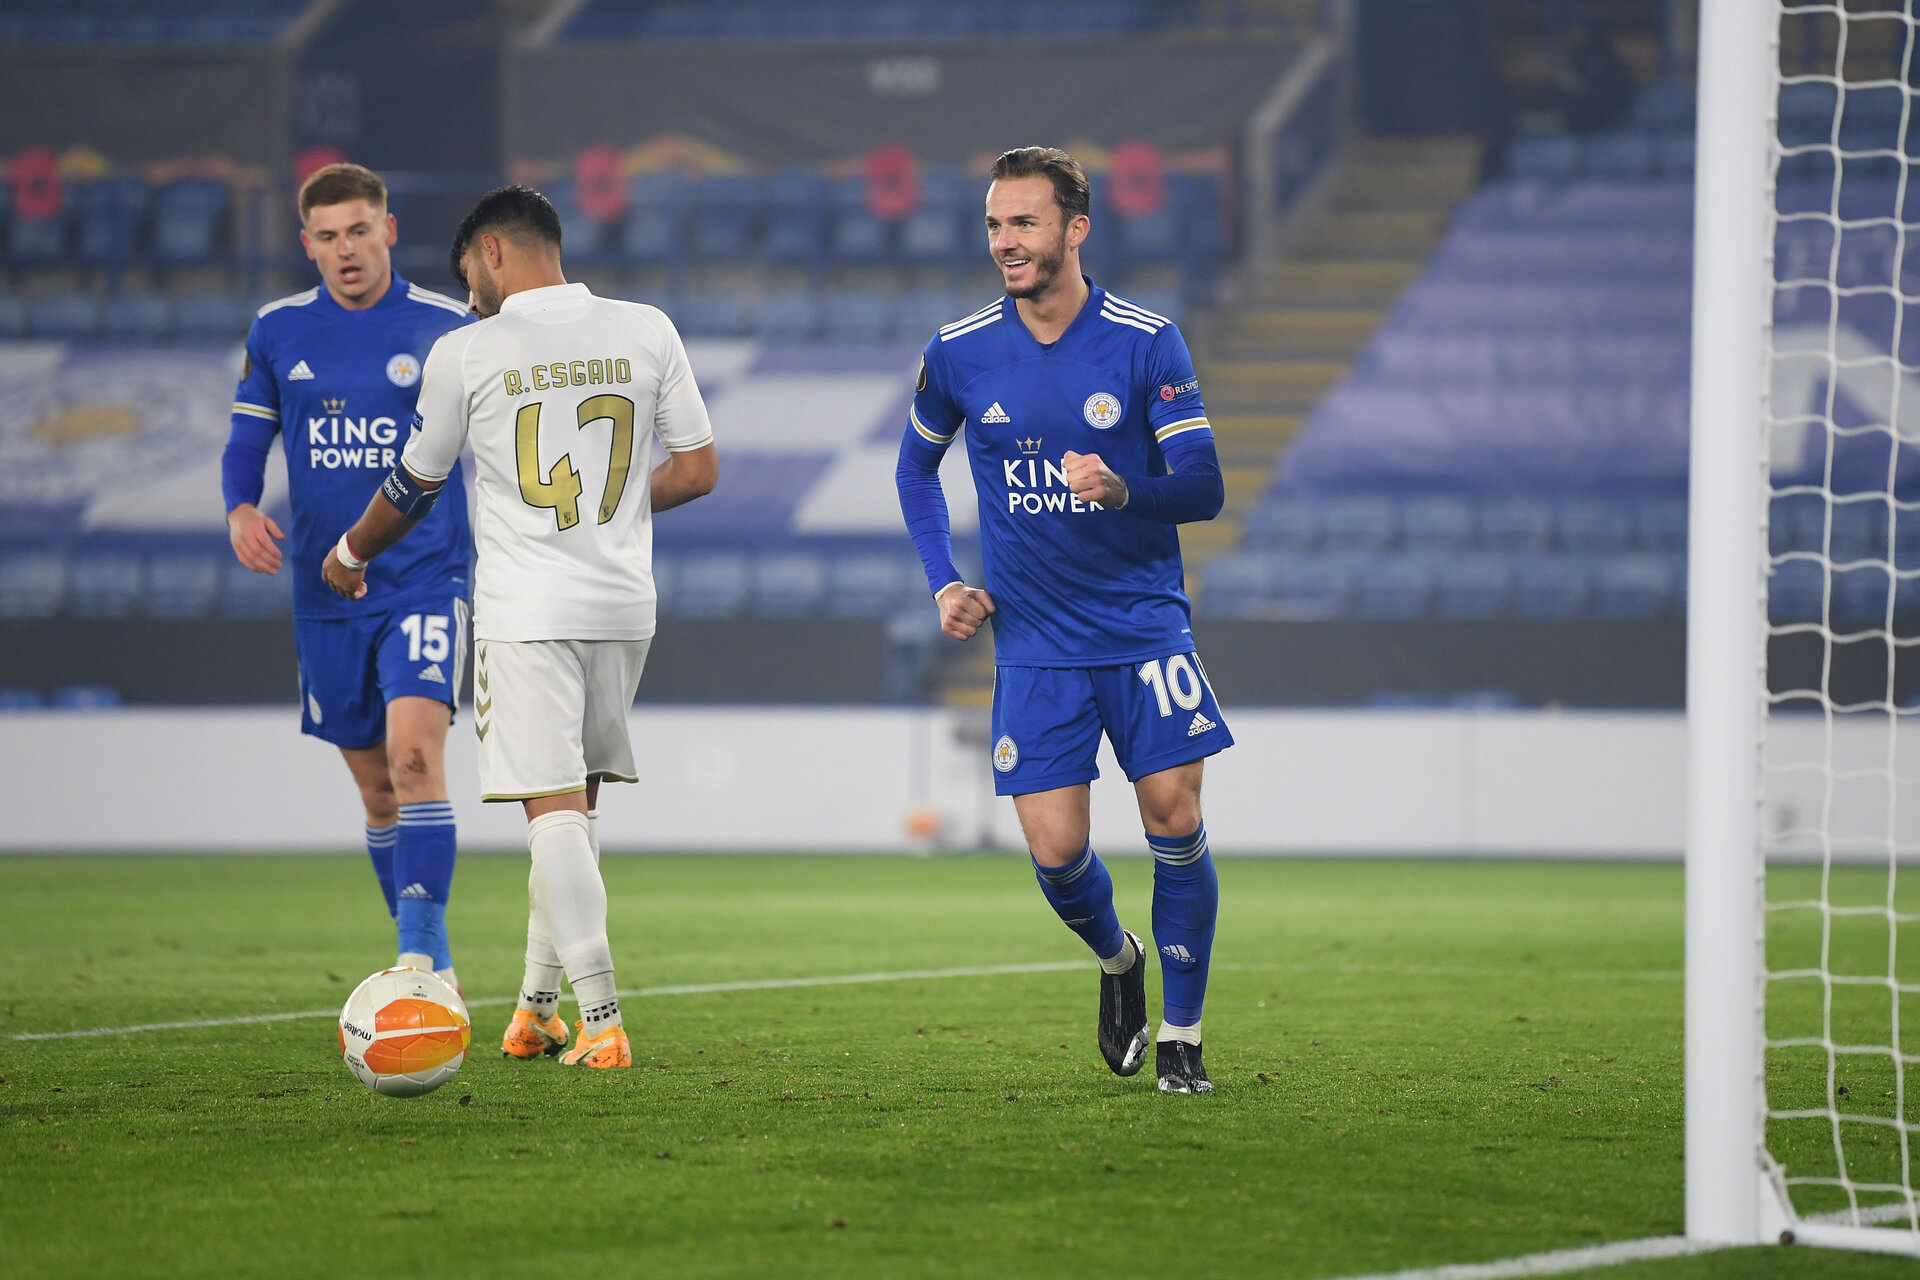 LEICESTER, ENGLAND - NOVEMBER 05: James Maddison of Leicester City  celebrates after he scores his team's fourth goal  during the UEFA Europa League Group G stage match between Leicester City and SC Braga at The King Power Stadium on November 05, 2020 in Leicester, England.  Sporting stadiums around the UK remain under strict restrictions due to the Coronavirus Pandemic as Government social distancing laws prohibit fans inside venues resulting in games being played behind closed doors. (Photo by Michael Regan/Getty Images)